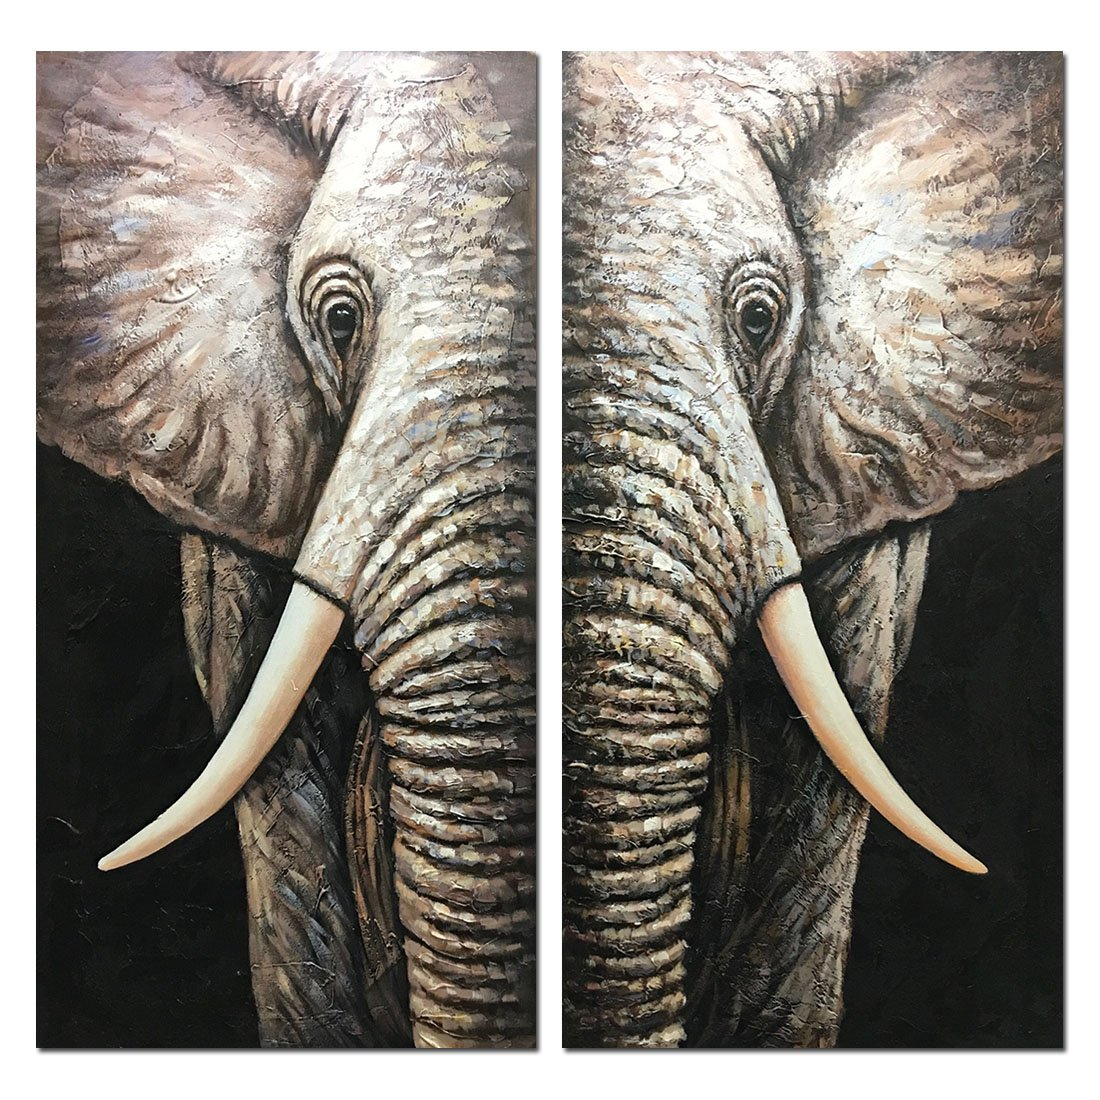 Yotree Paintings, 32x32 Inch Paintings Oil Hand Painting Elephant 3D Hand-Painted On Canvas Abstract Artwork Art Wood Inside Framed Hanging Wall Decoration Abstract Painting Living Room Bedroom